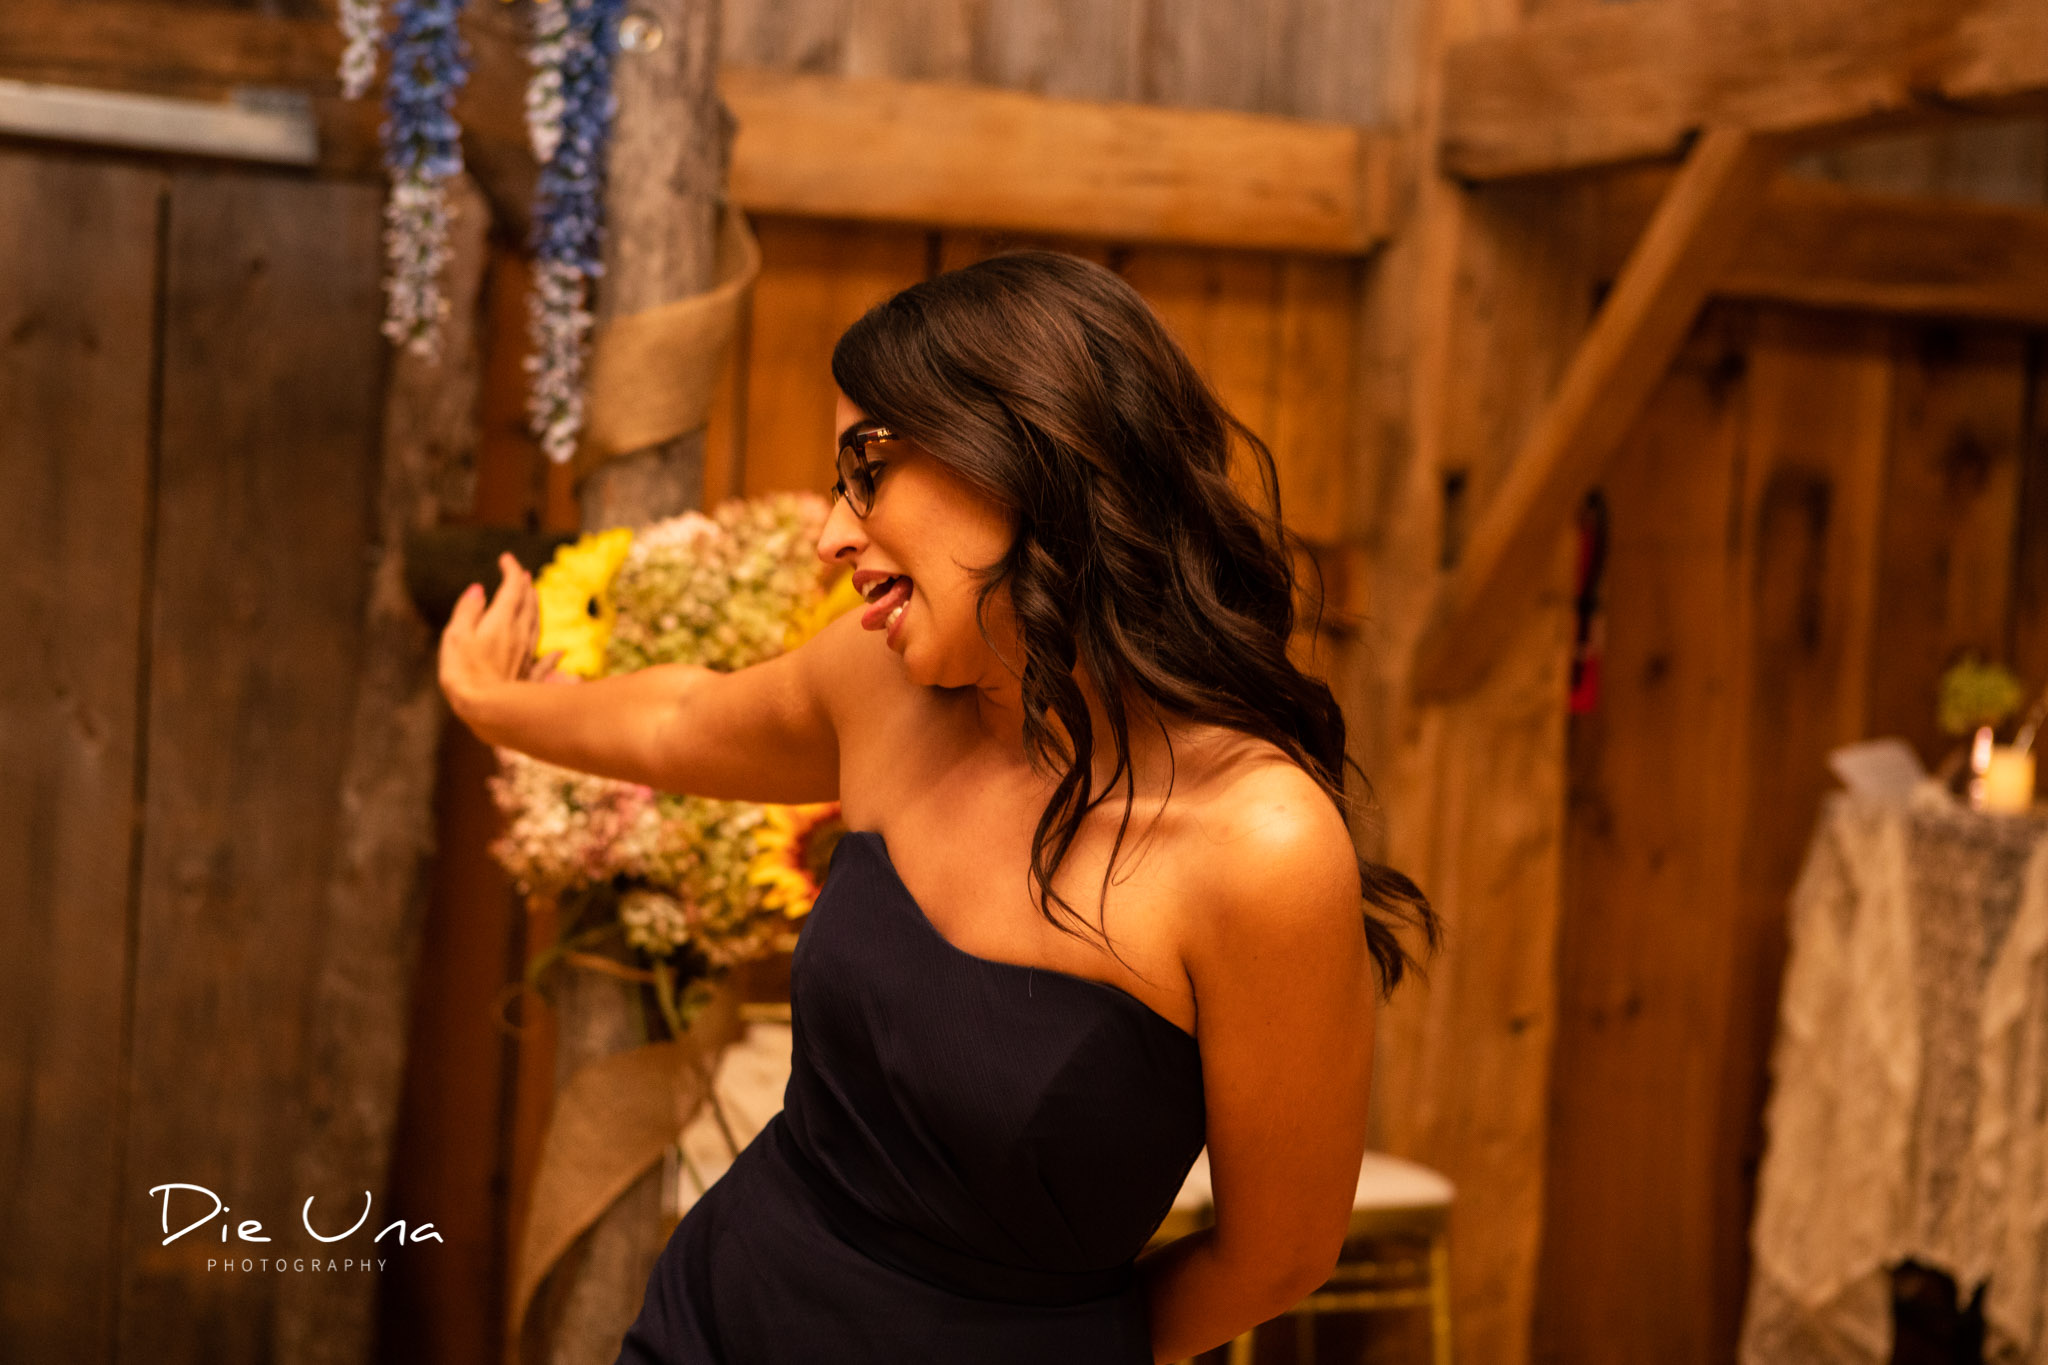 bridesmaid making a silly face during dance at wedding reception in a barn.jpg